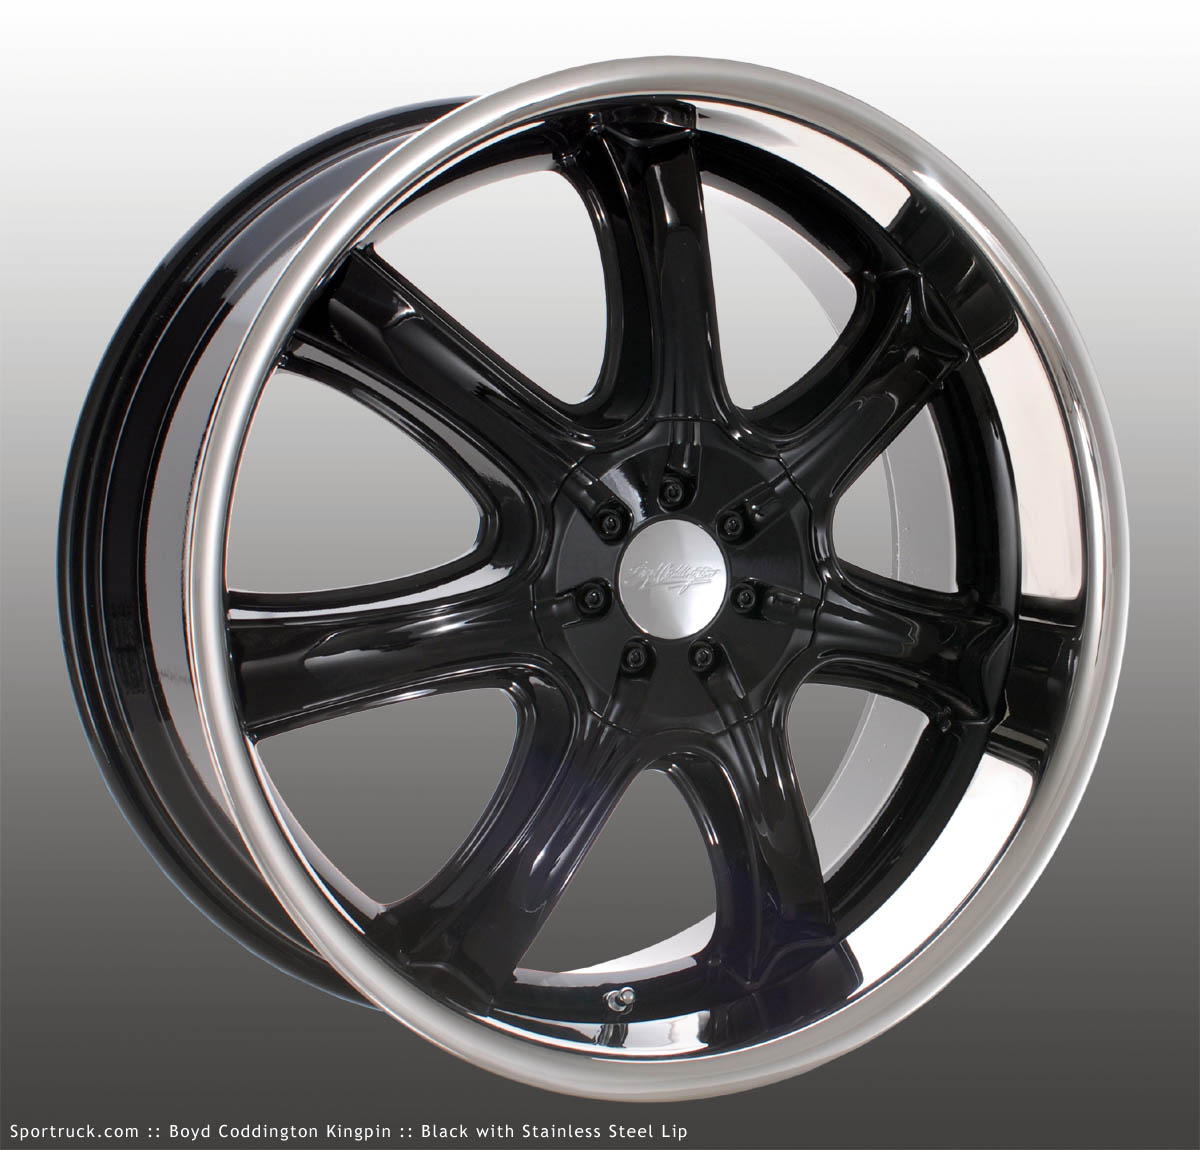 15 Inch Tires >> 2008 GMC Sierra by Boyd Coddington - Sportruck.com